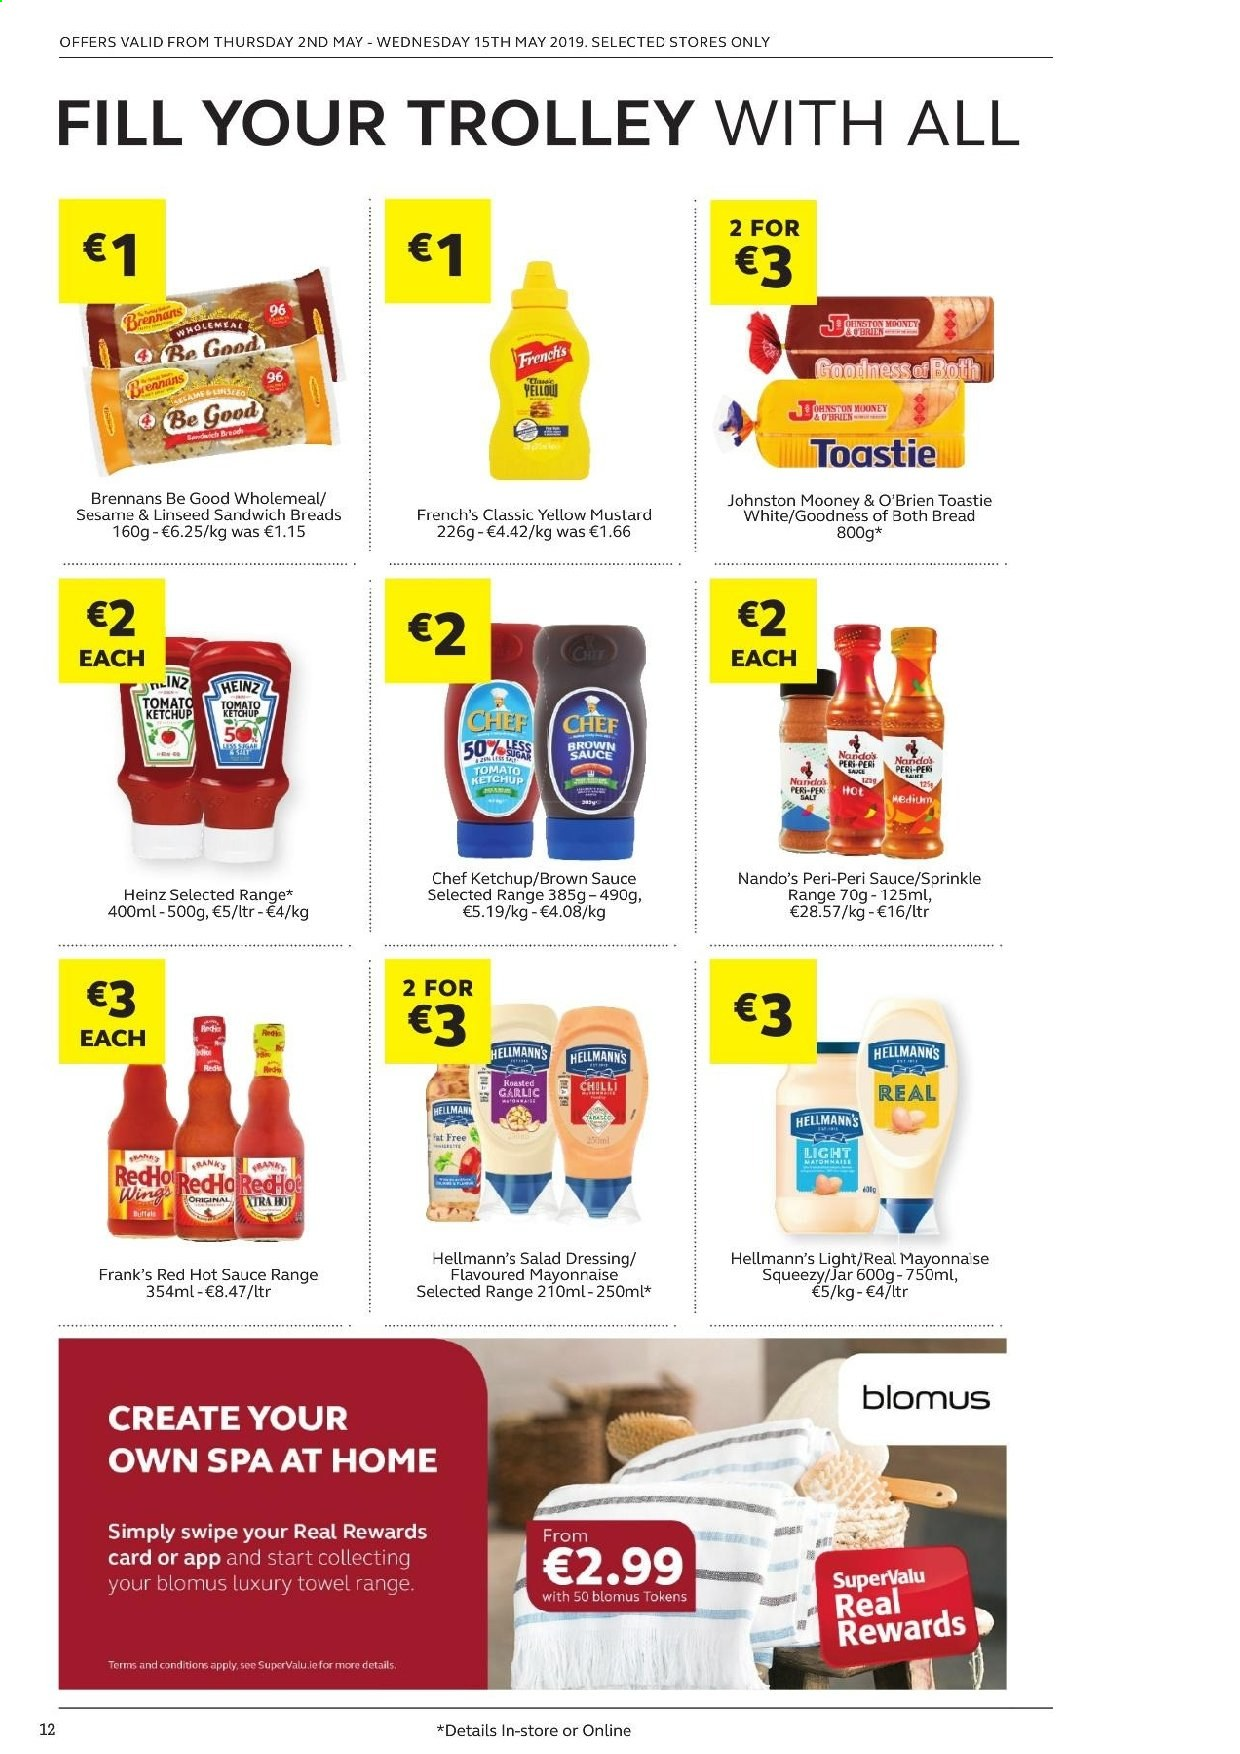 SuperValu offer  - 2.5.2019 - 15.5.2019 - Sales products - bread, garlic, sandwich, sauce, mayonnaise, Hellmann's, Heinz, mustard, salad dressing, hot sauce, ketchup, brown sauce, dressing, trolley. Page 12.